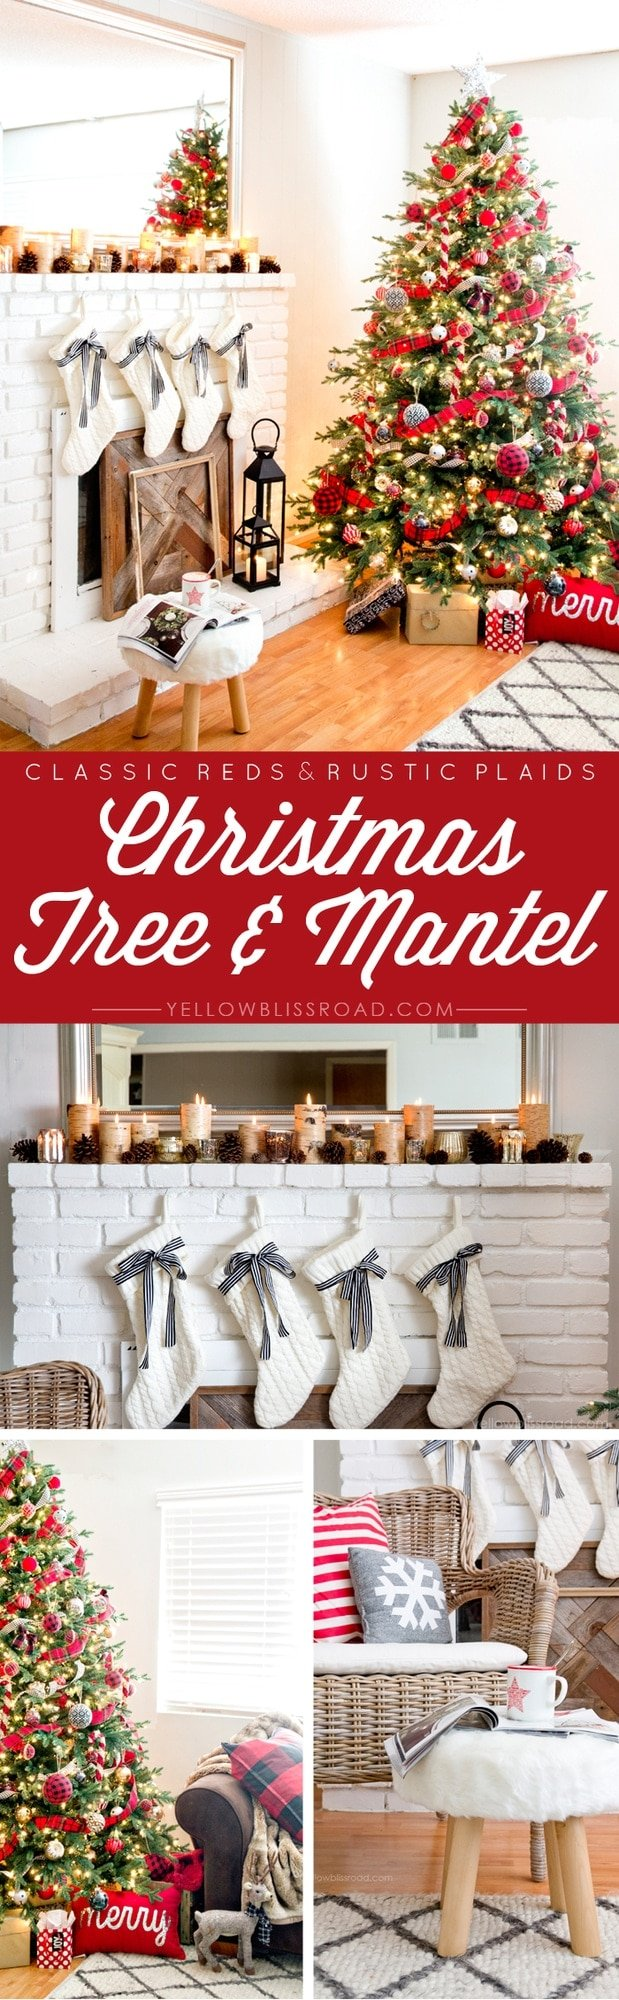 Classic Reds & Rustic Plaids Christmas Tree & Mantel